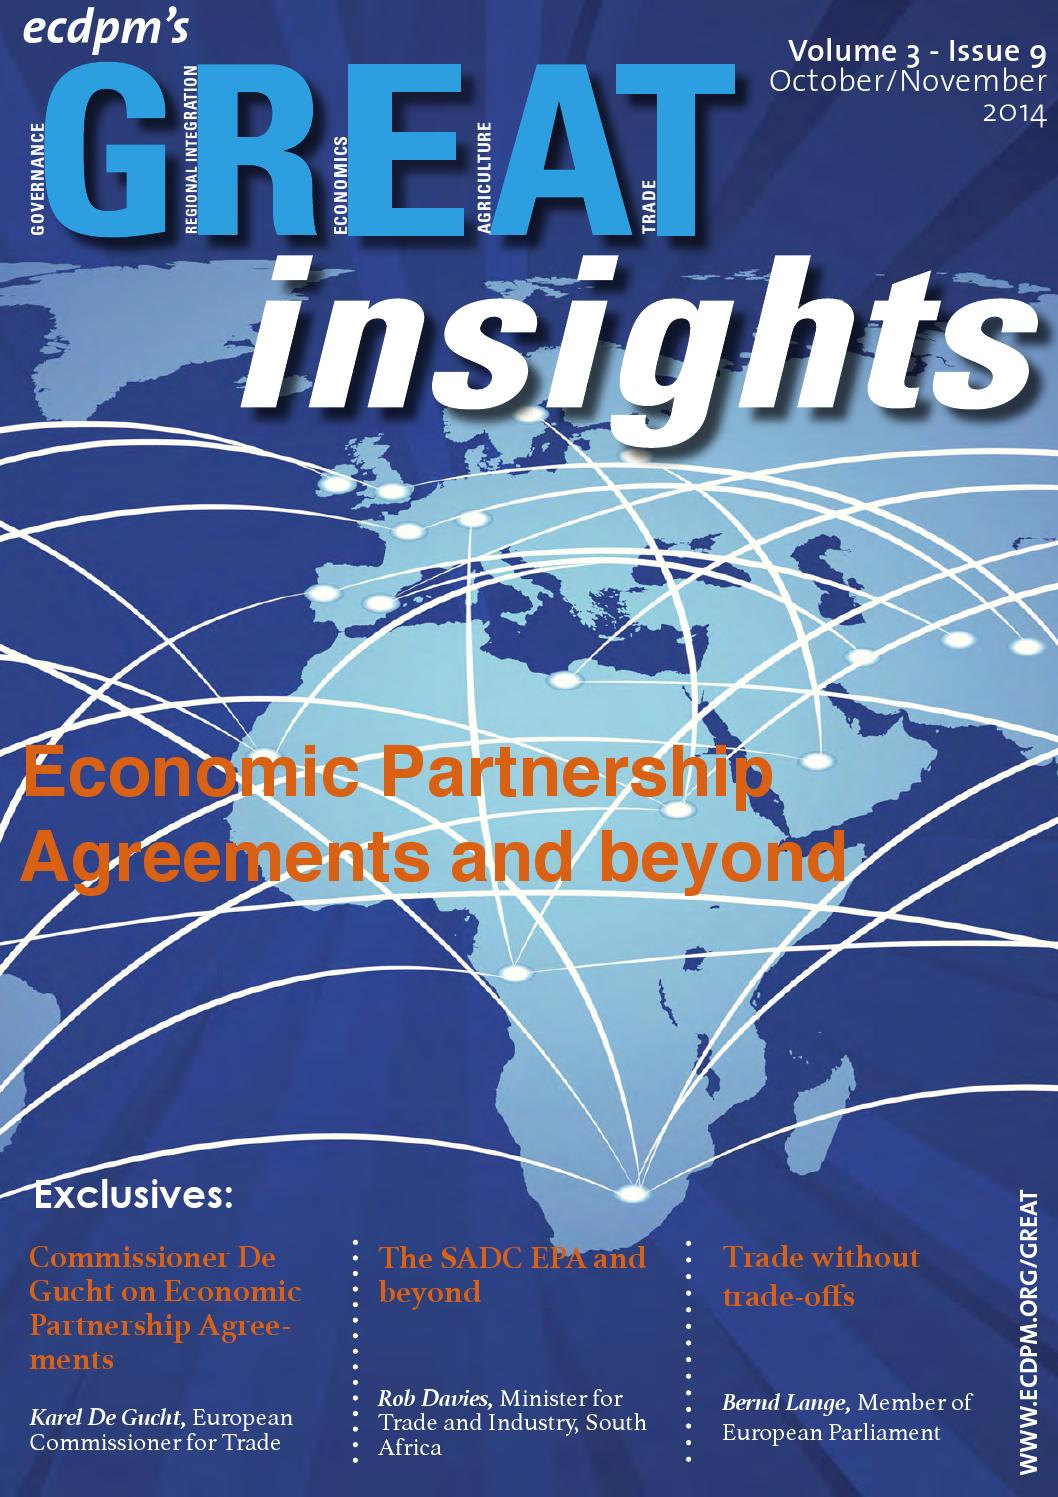 Great Insights Economic Partnerships Agreements And Beyond By Ecdpm